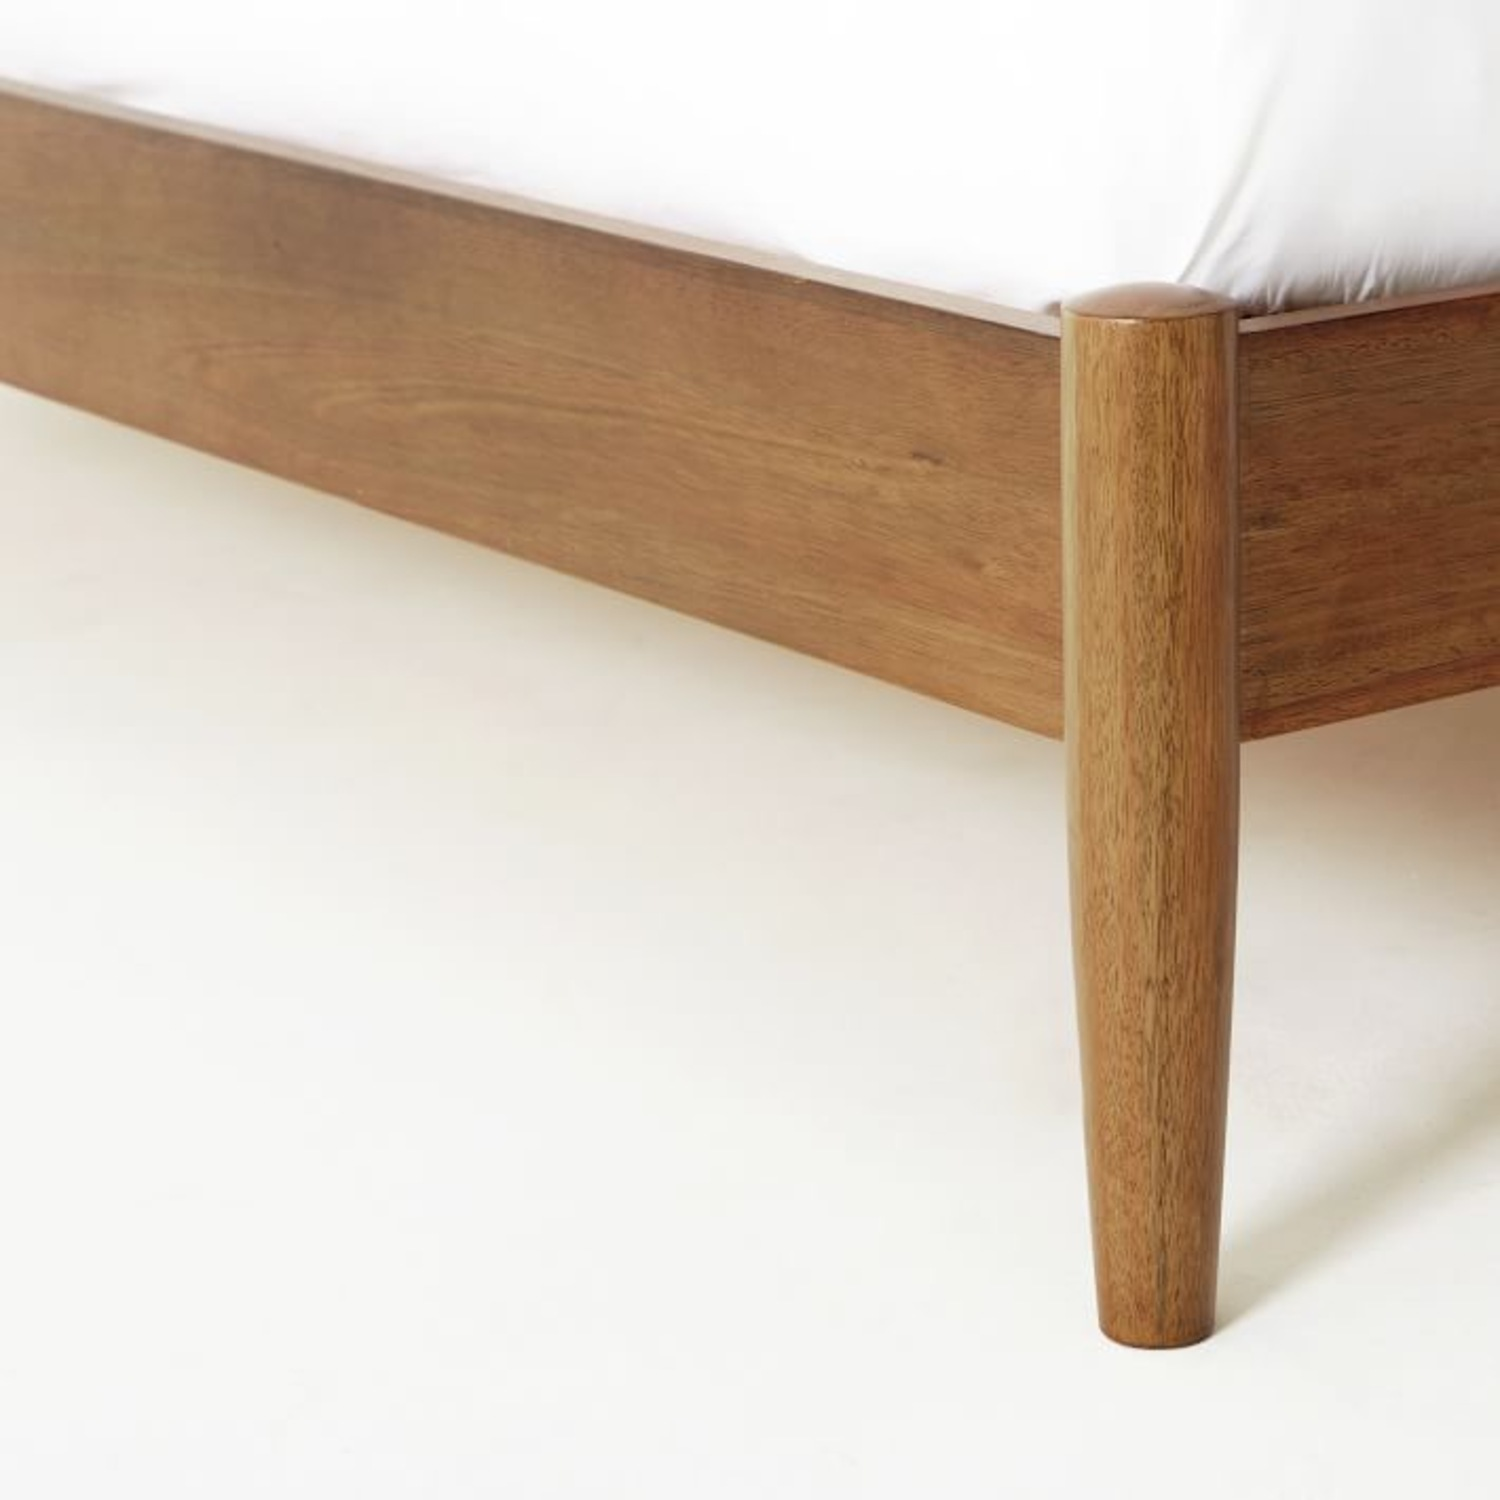 West Elm Mid Century Bed - Queen - image-2